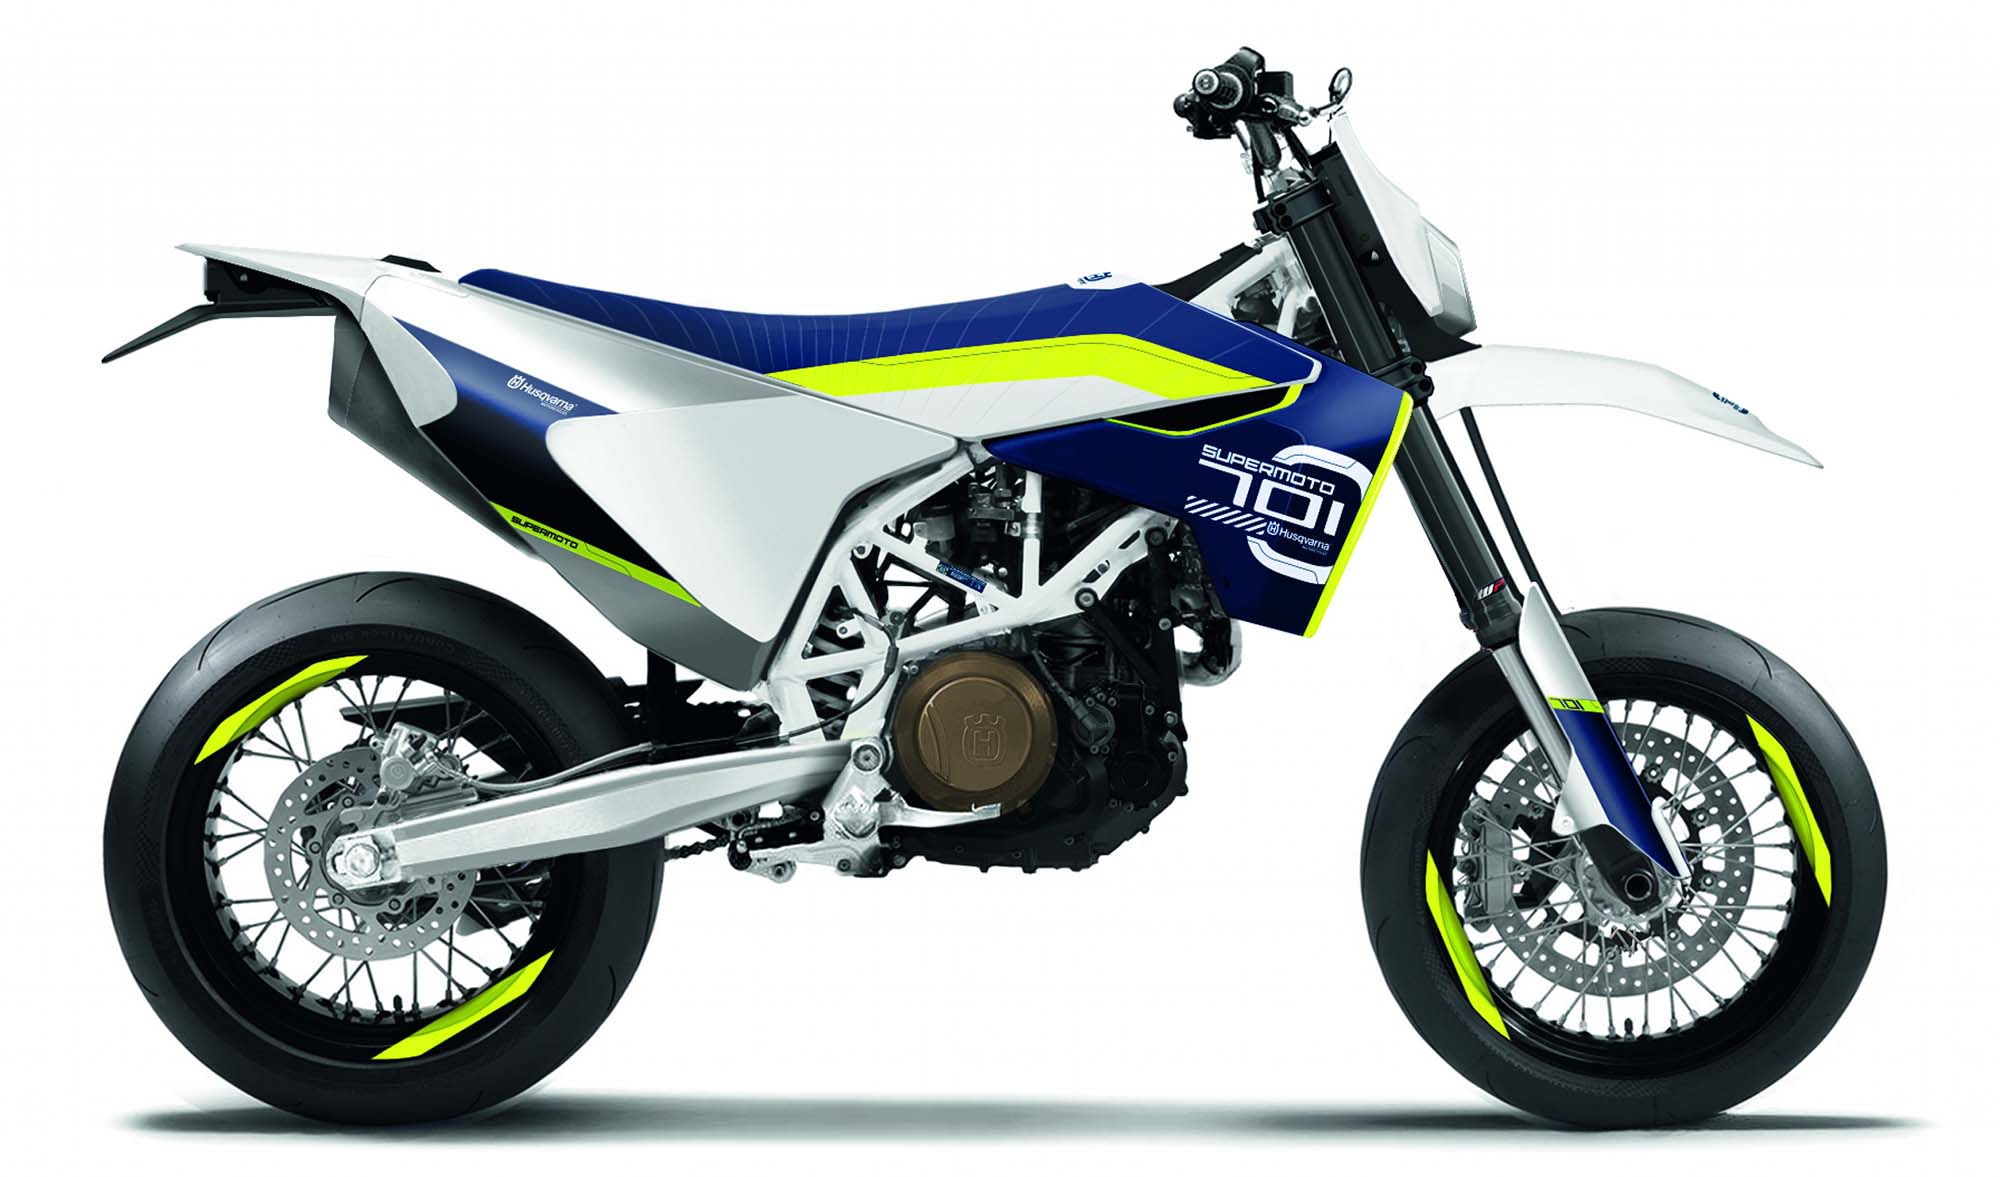 Husqvarna Sm 450r Bikes: More Details On The Husqvarna 701 Supermoto